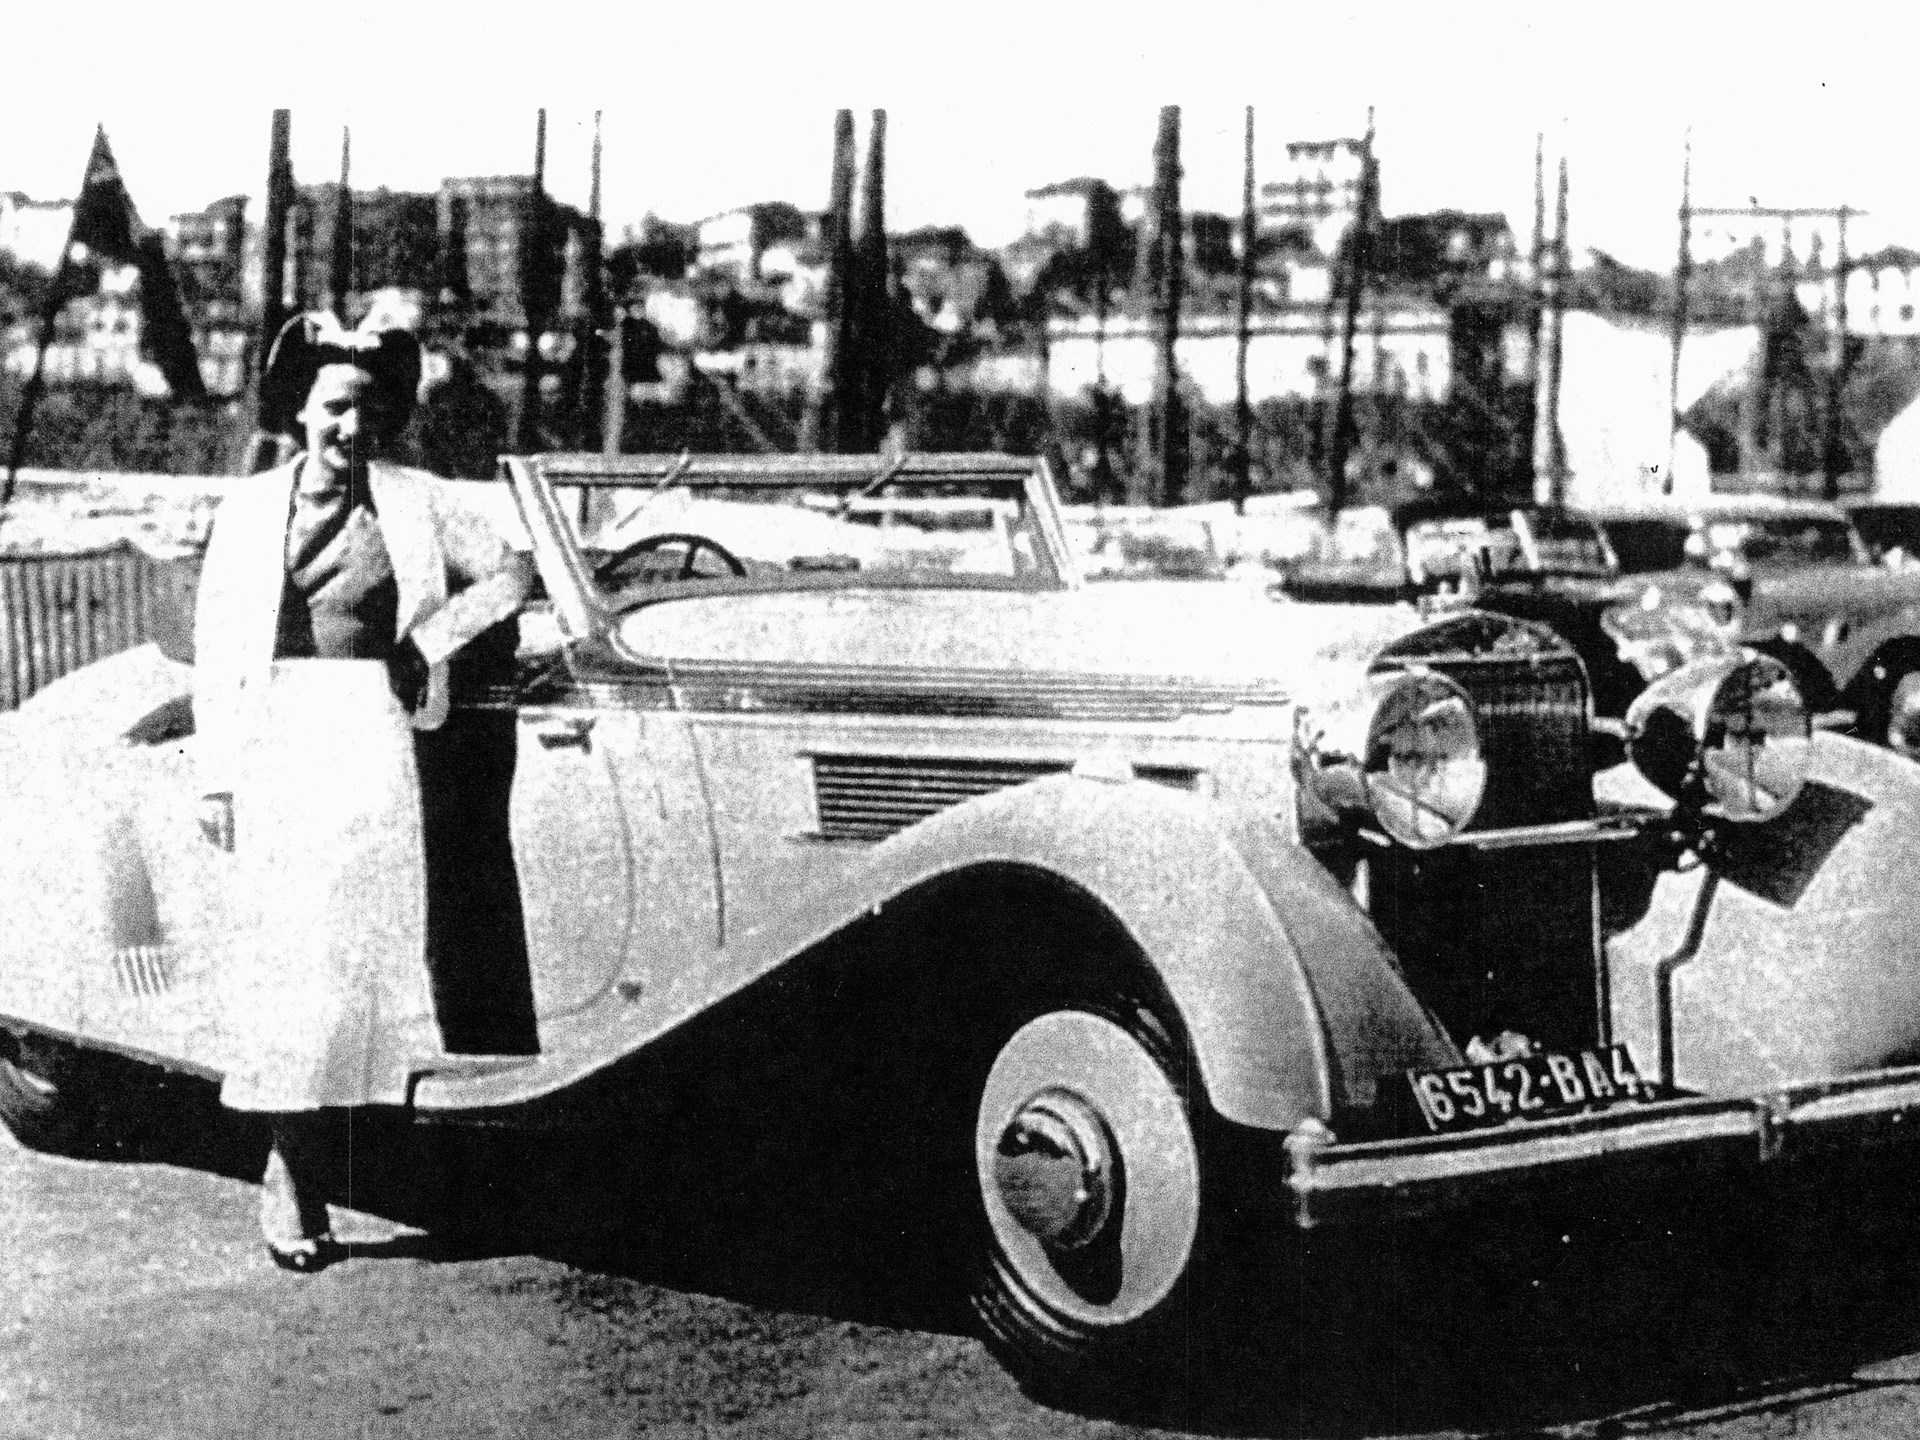 The winner of the 1936 L'Elegance Automobile, posed at Cannes with Madame Lartique.